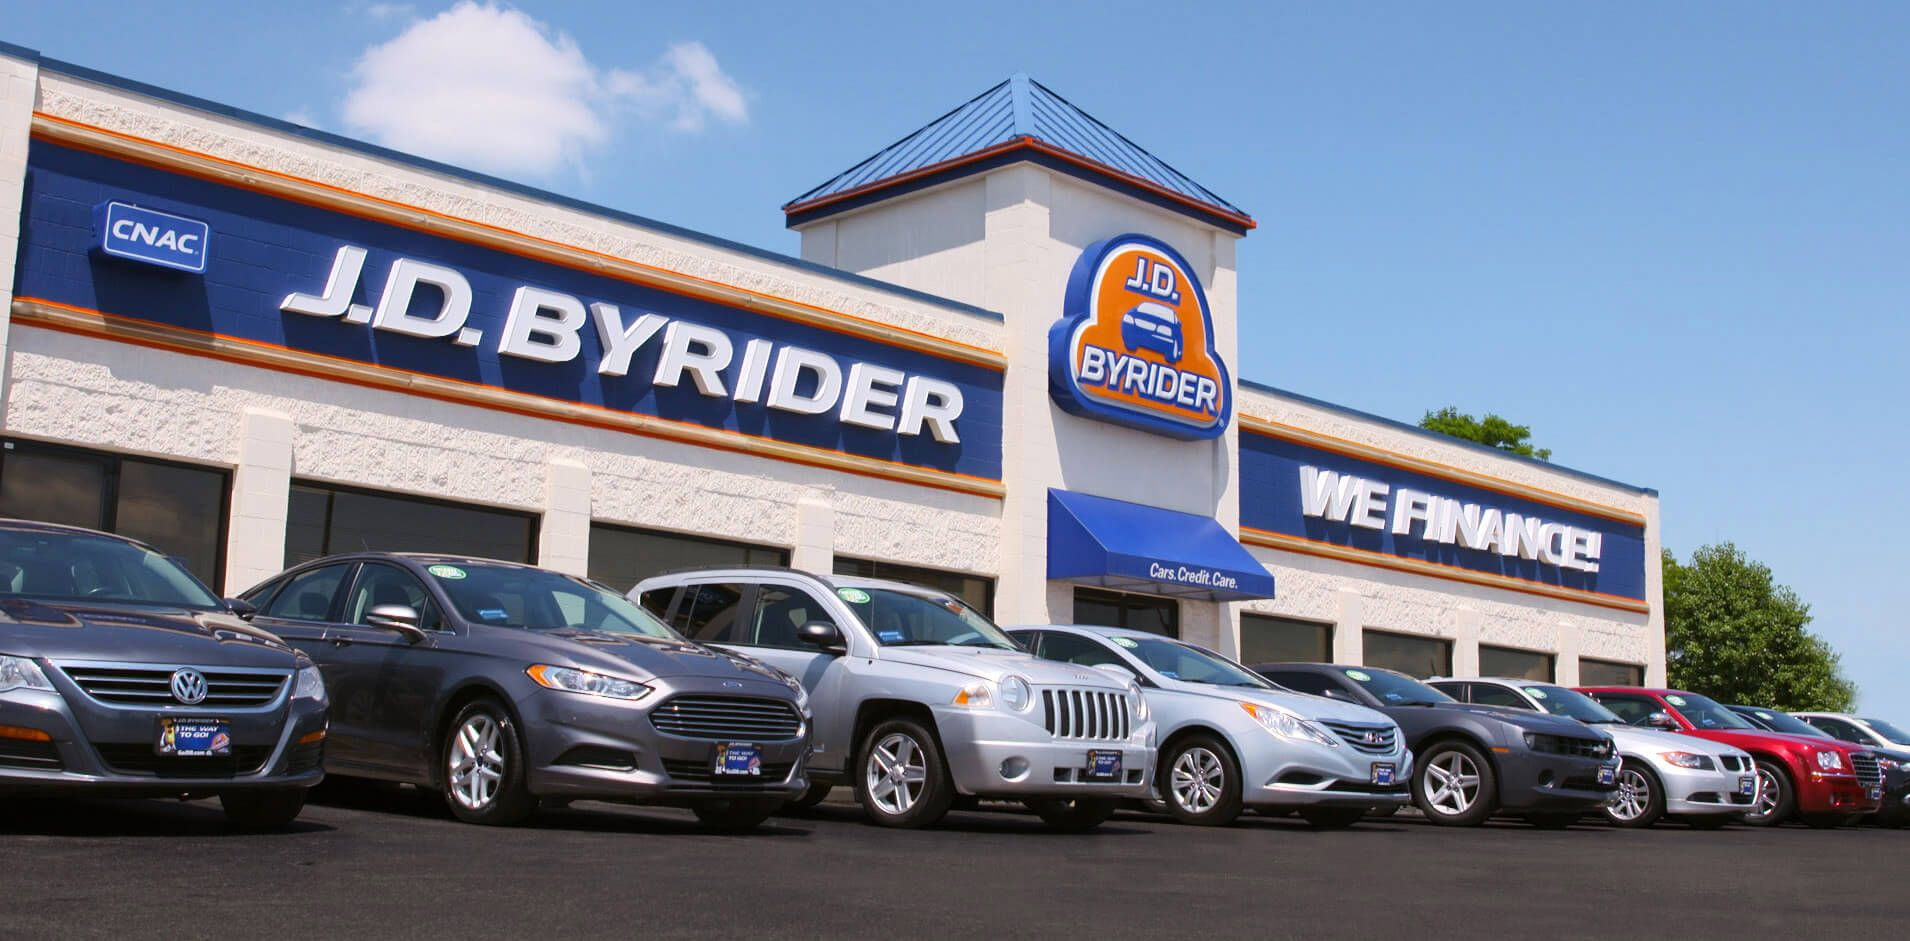 J.D. Byrider has been in the buy here pay here business